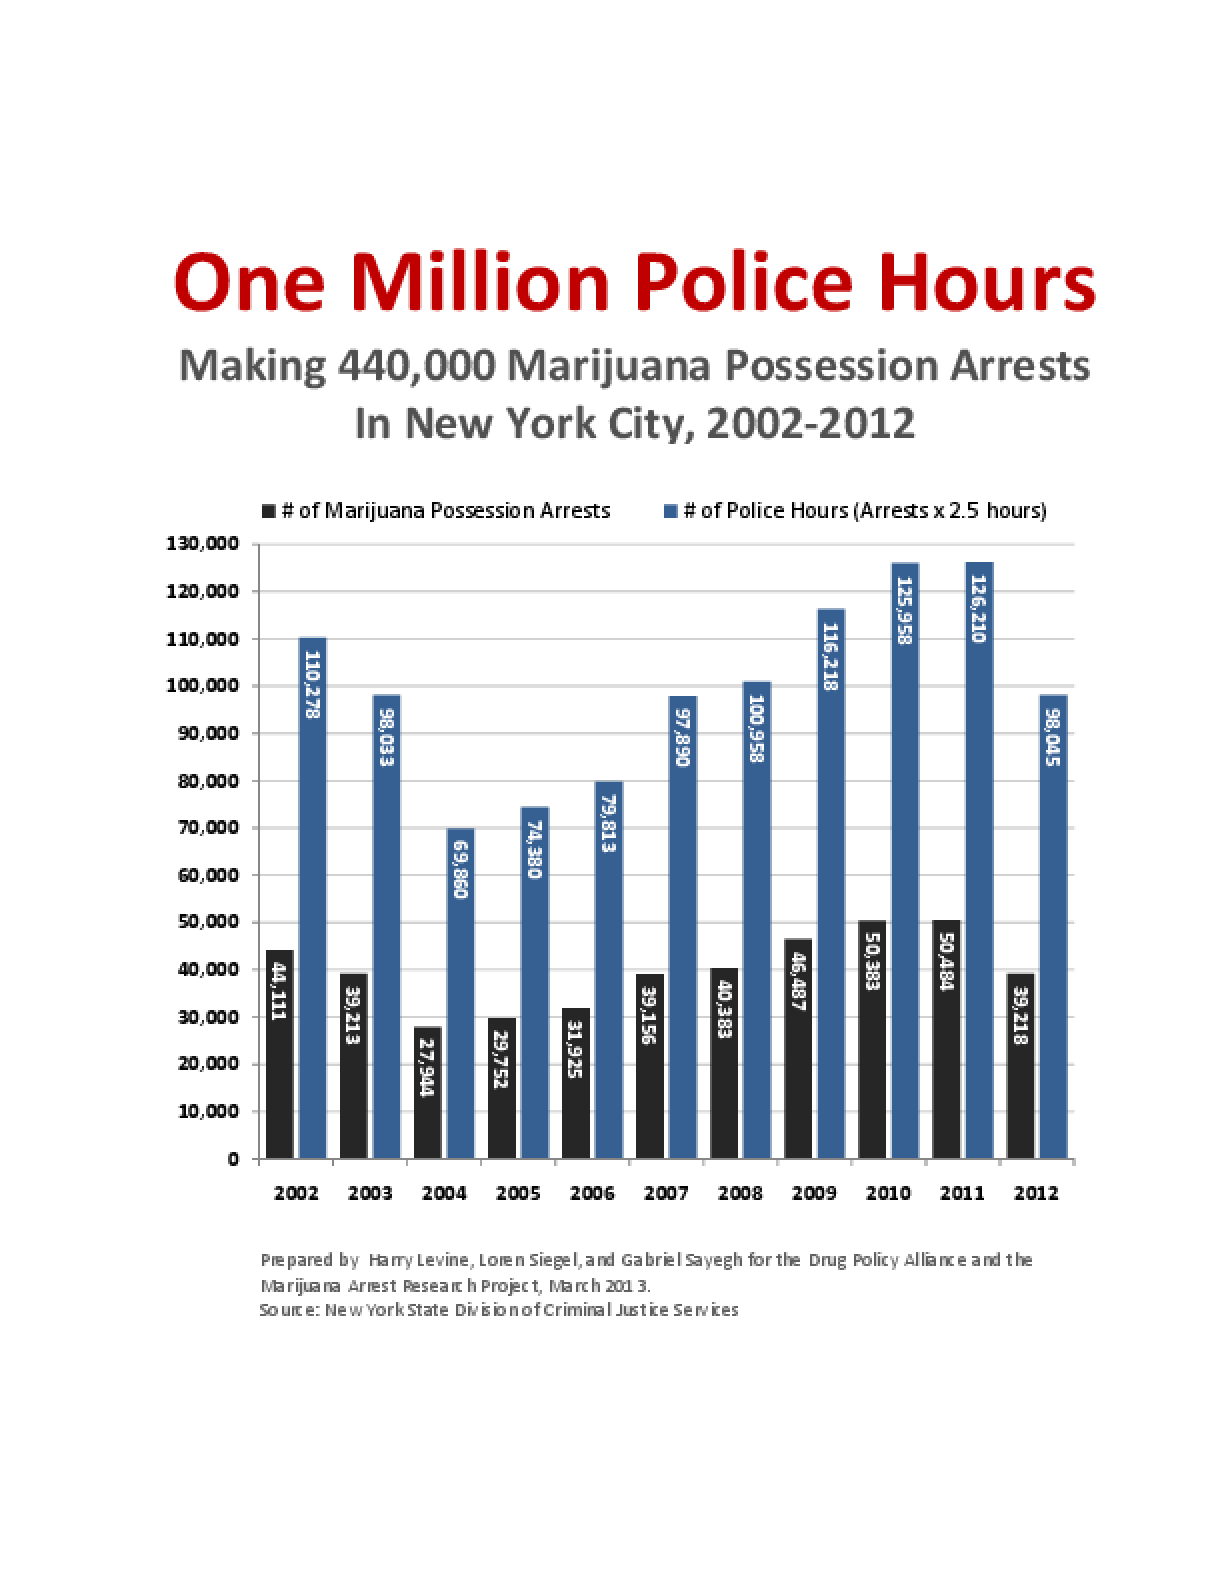 One Million Police Hours: Making 440,000 Marijuana Possession Arrests in New York City